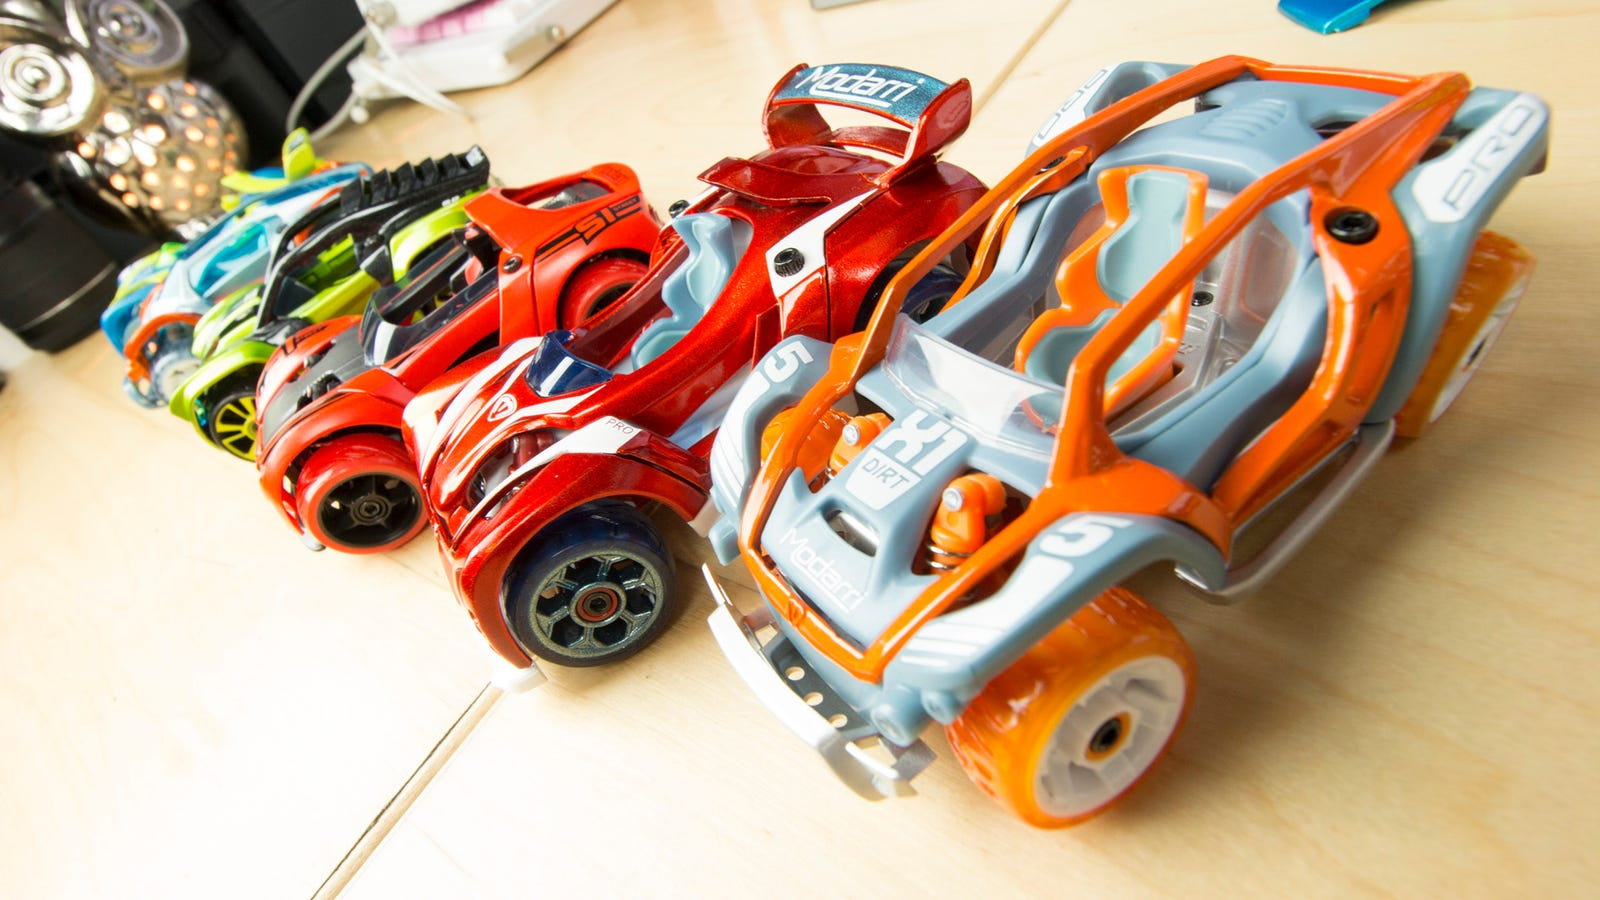 The Coolest Toy Cars Are The Ones You Build Yourself